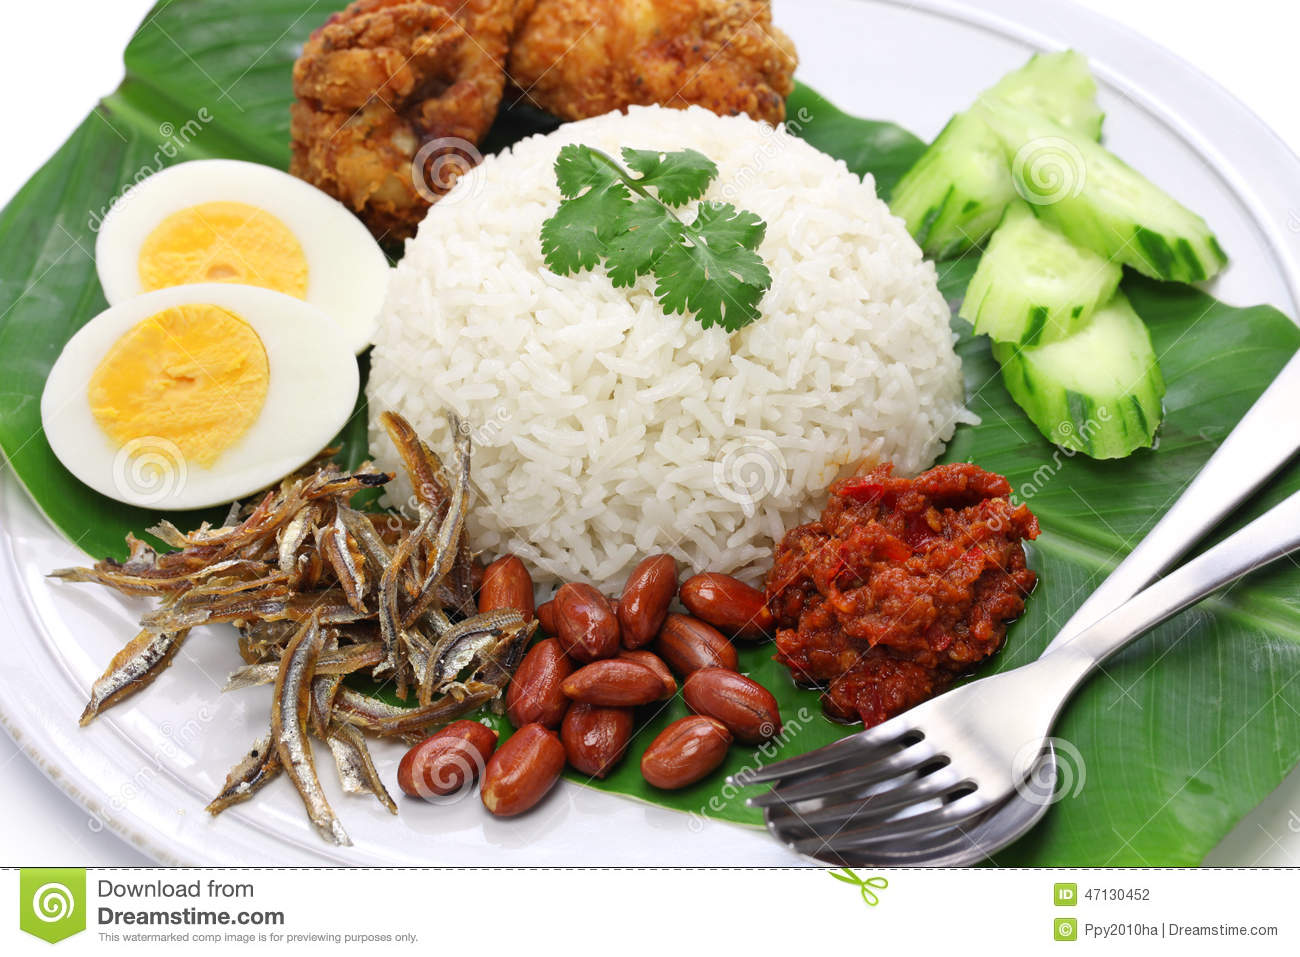 Essay about local food in malaysia